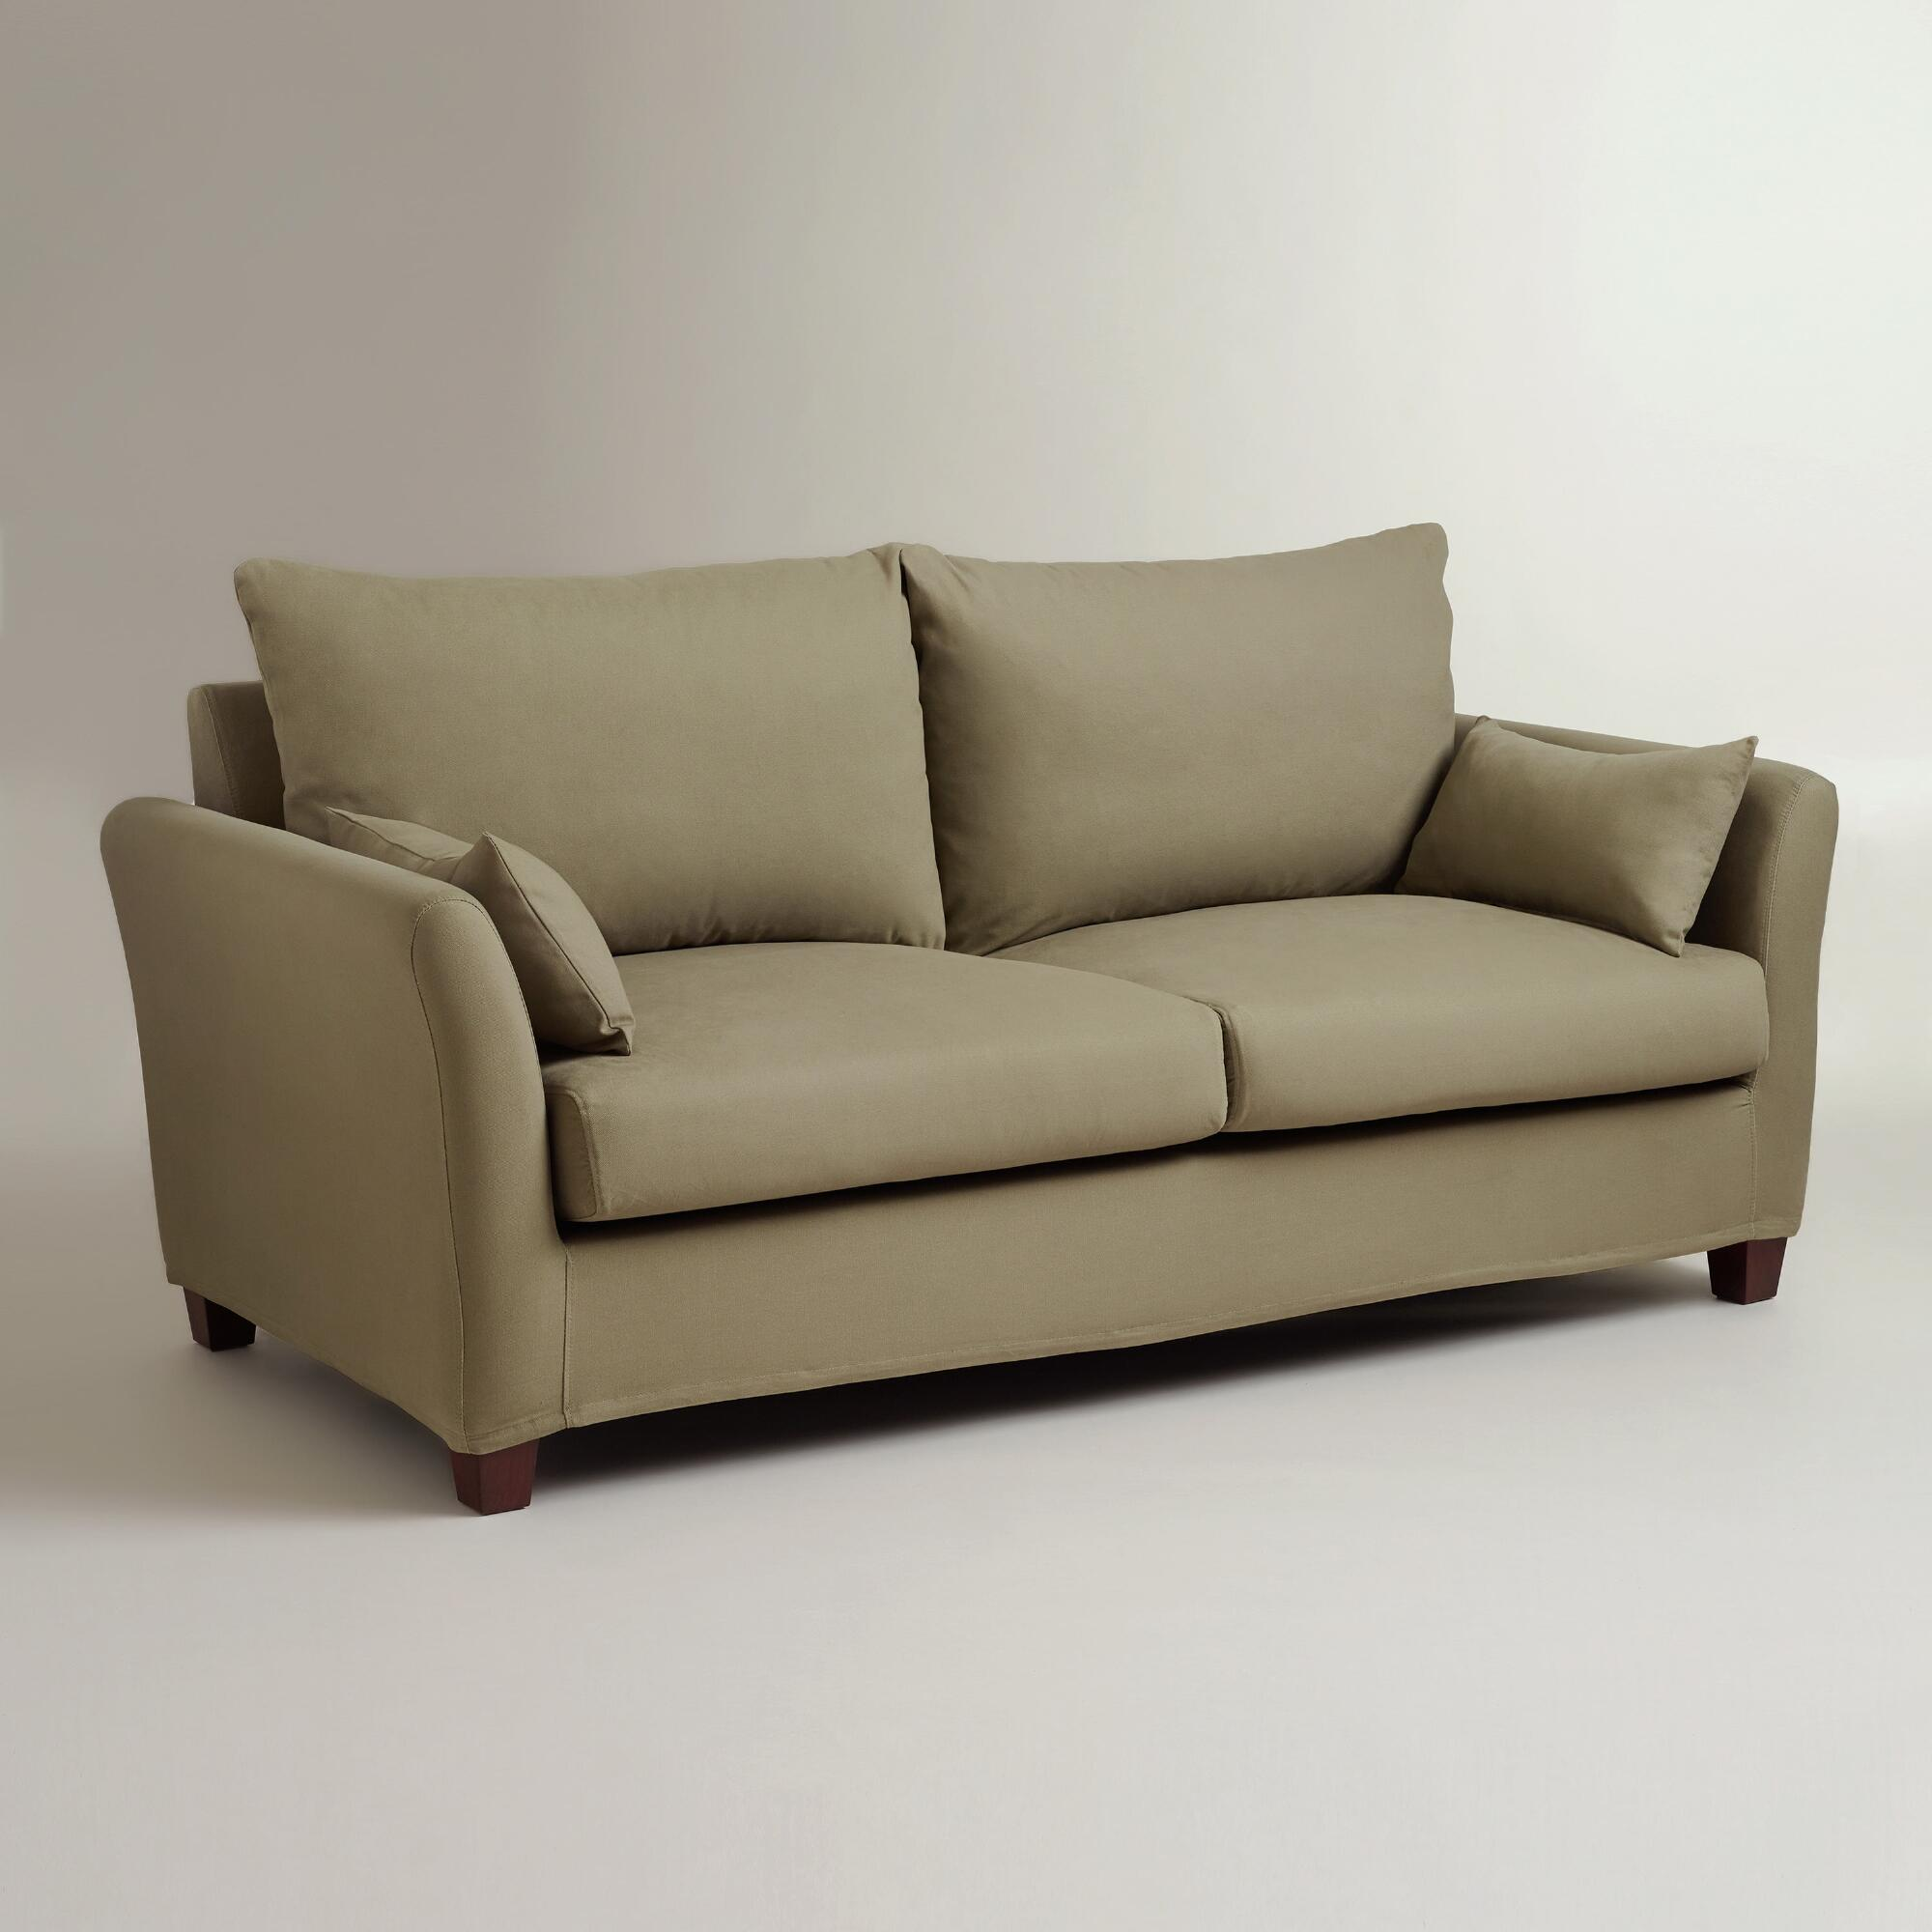 Sage luxe sofa slipcover world market for Outdoor furniture covers world market